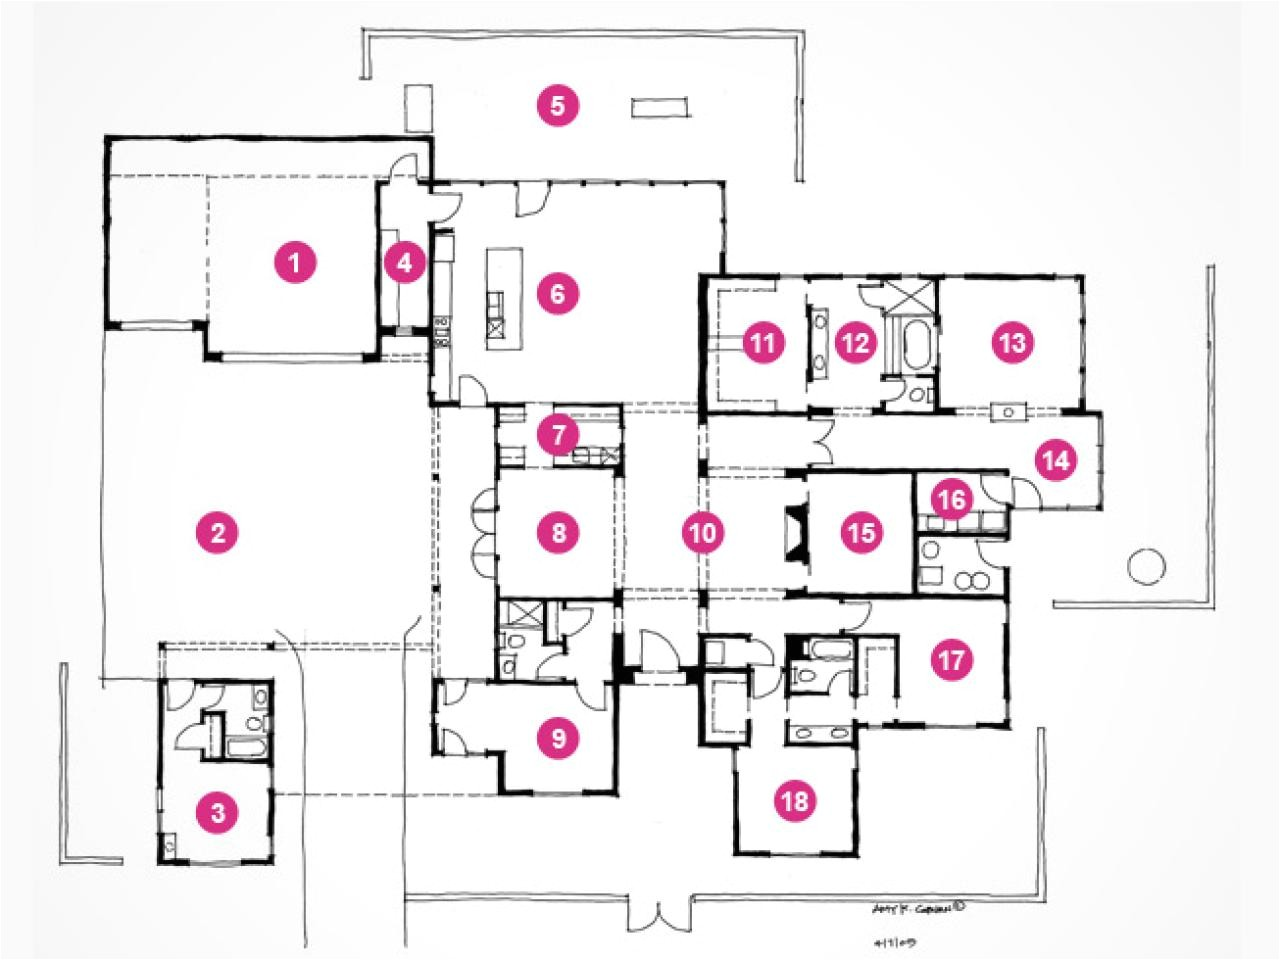 hgtv dream home 2010 floor plan and rendering